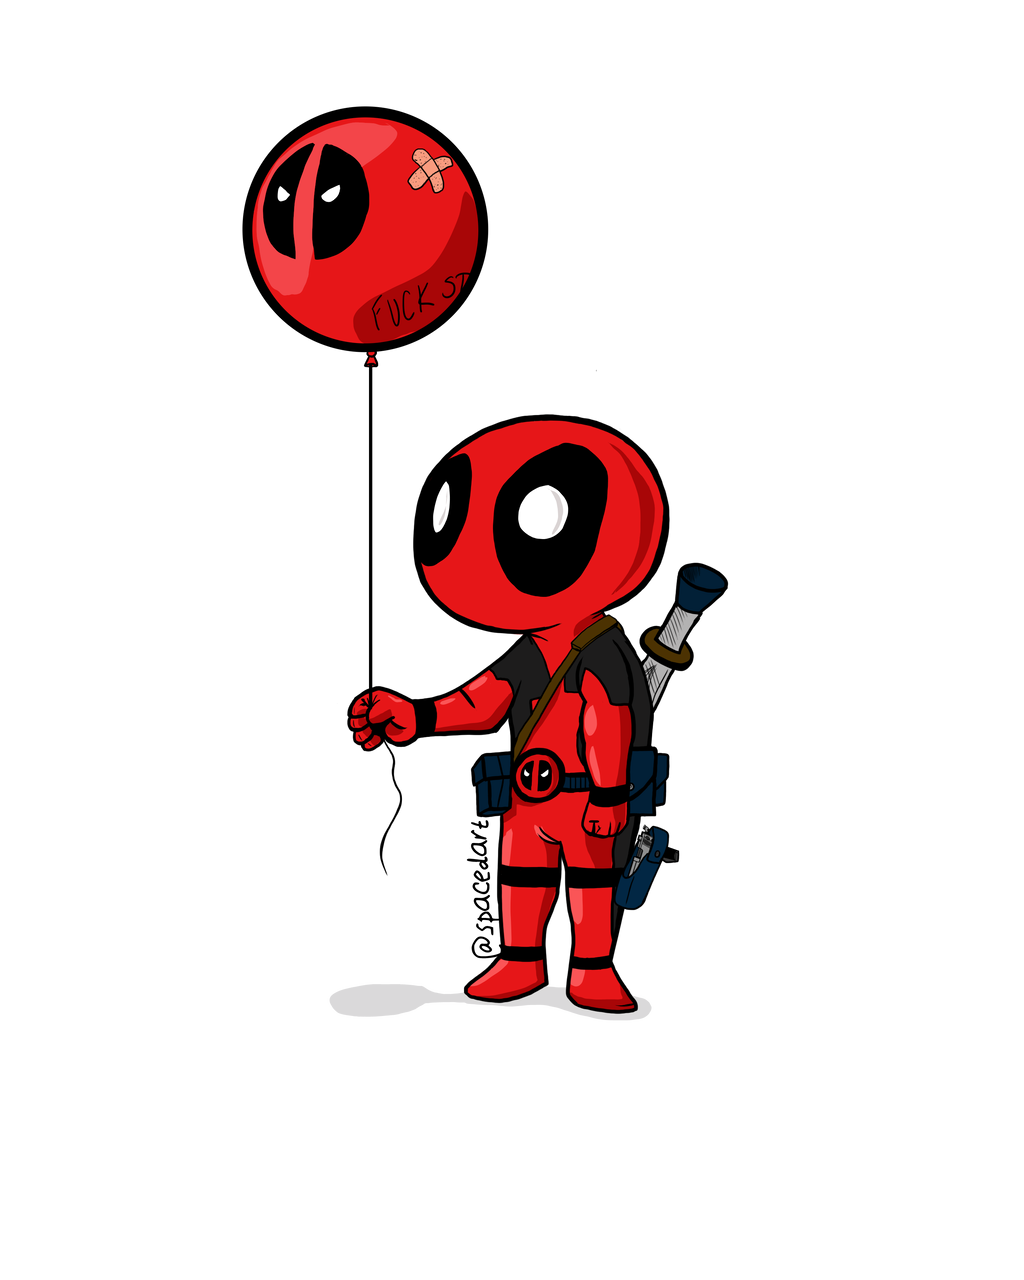 Deadpool and his Balloon